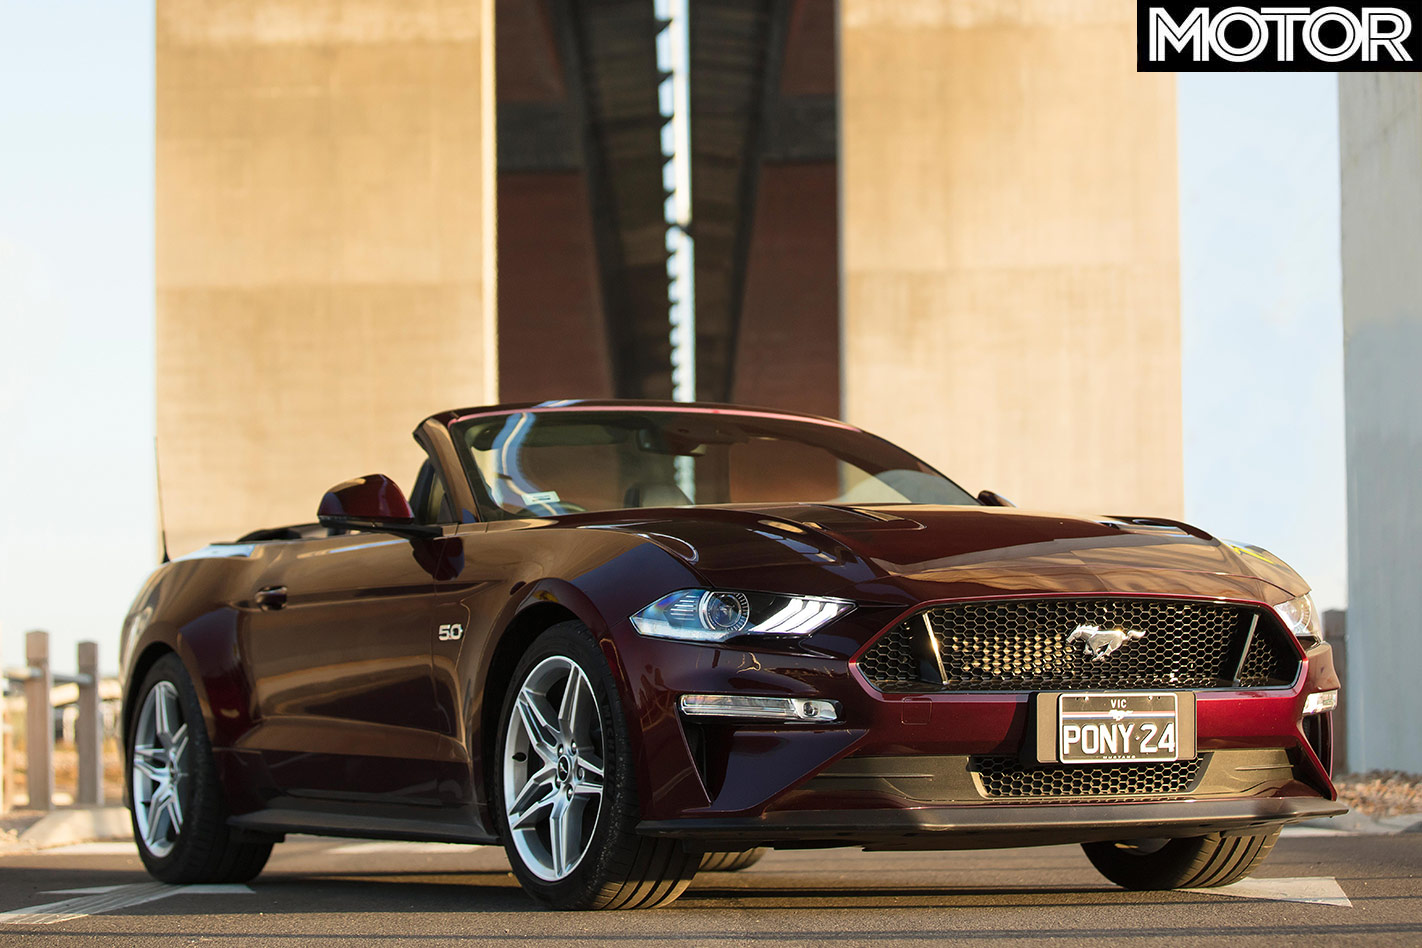 Ford Mustang front view